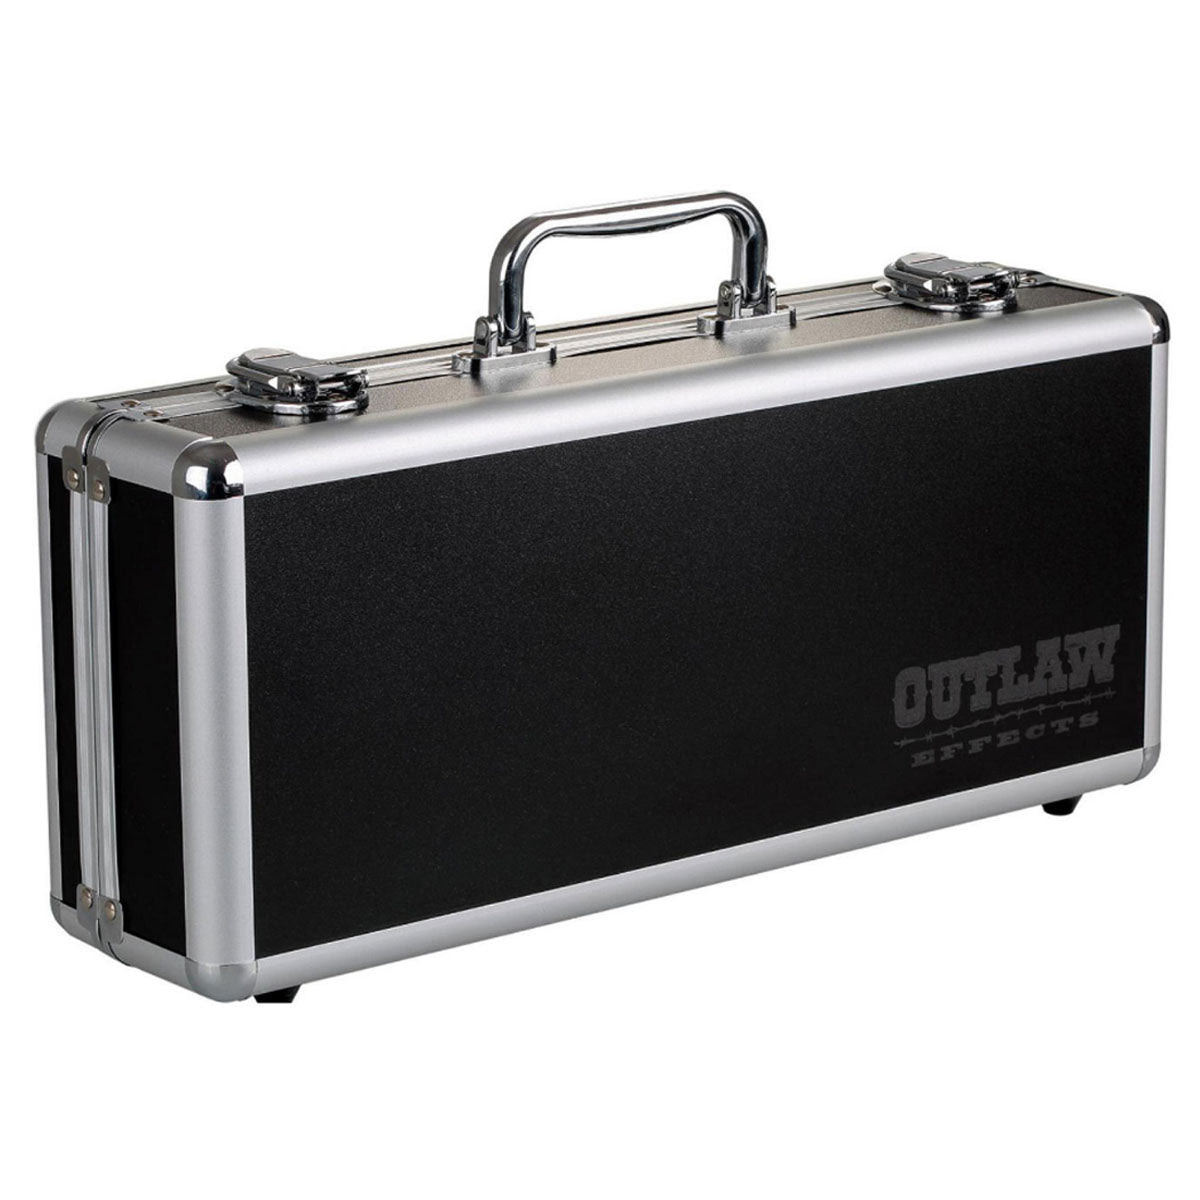 Outlaw Effects PedalBoard Pedal Case w/ Adaptor & Lead